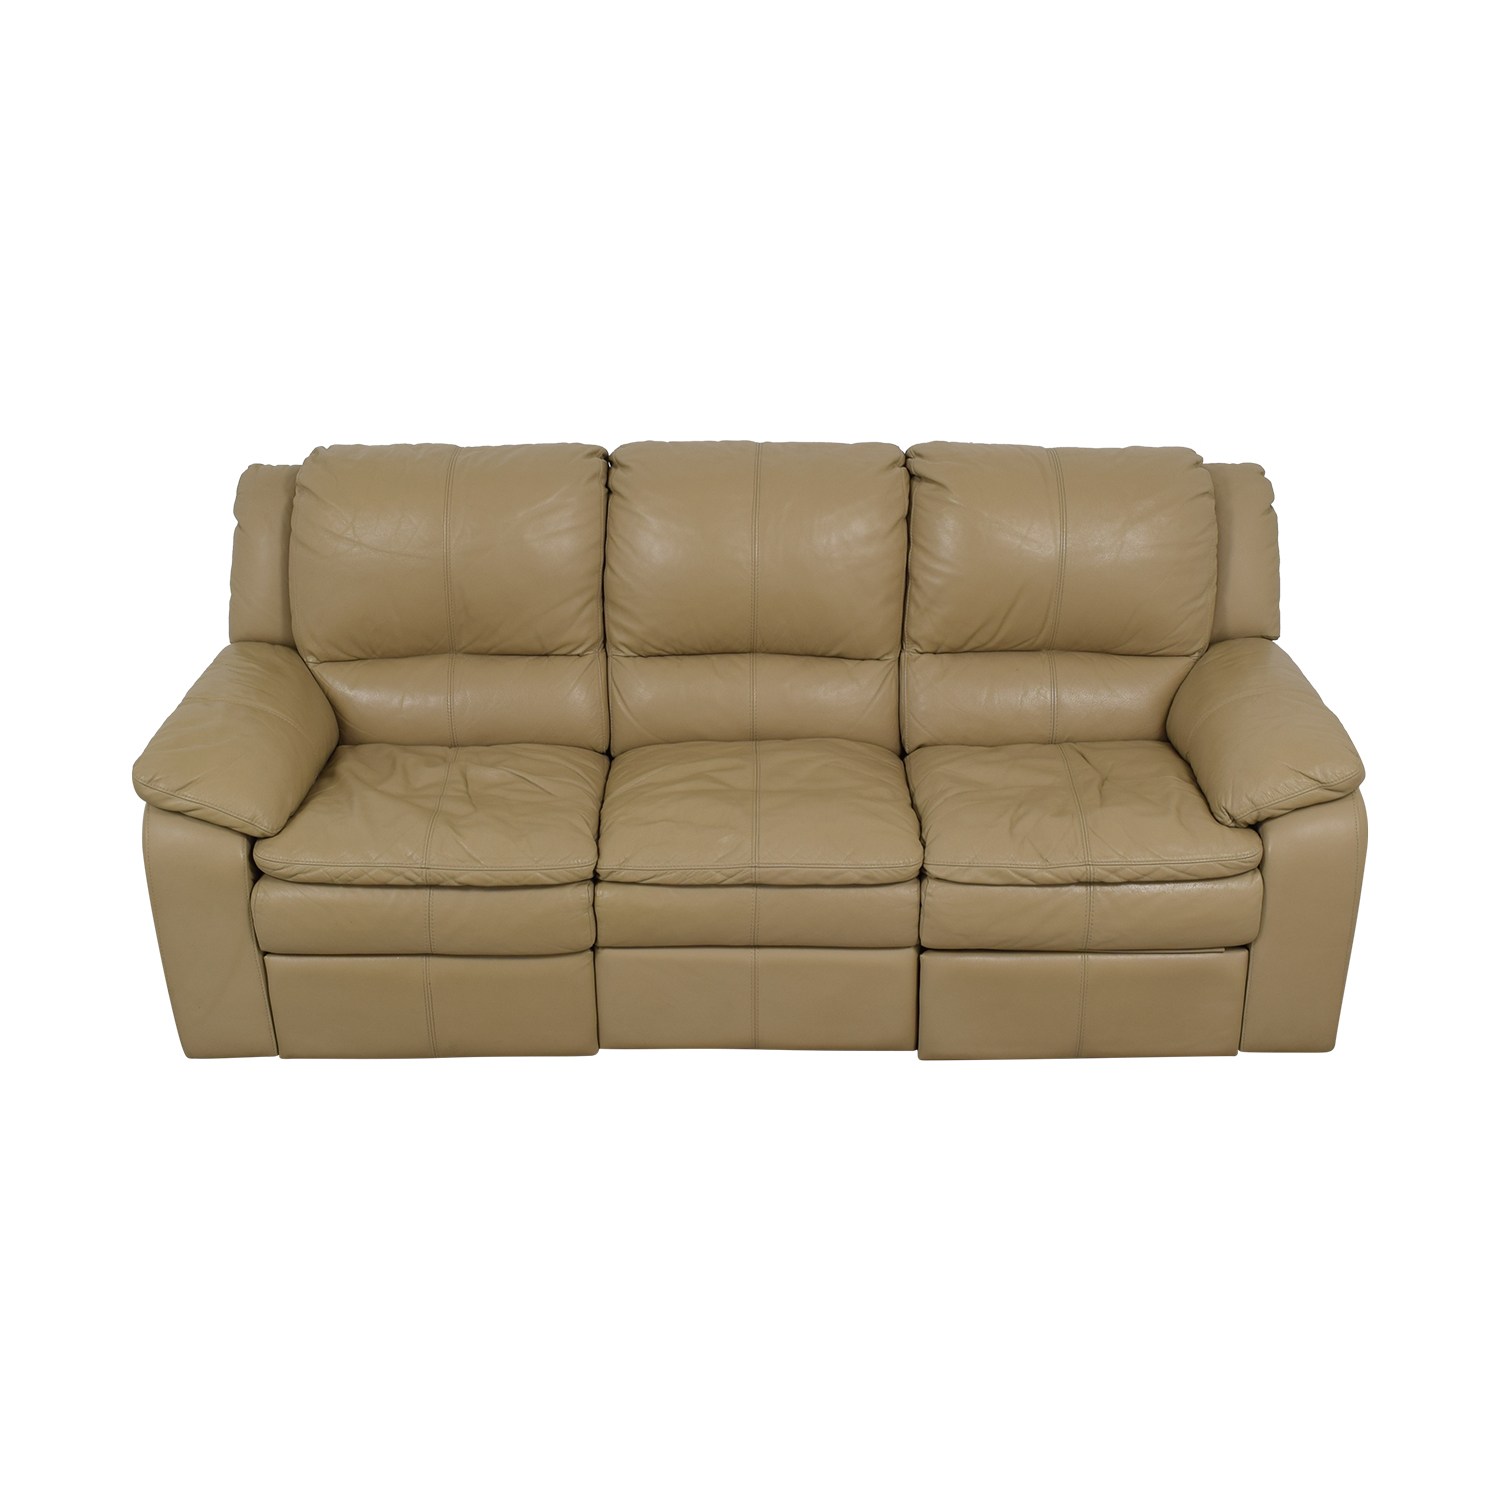 buy Jennifer Furniture Beige Leather Three-Seater Reclining Sofa Jennifer Furniture